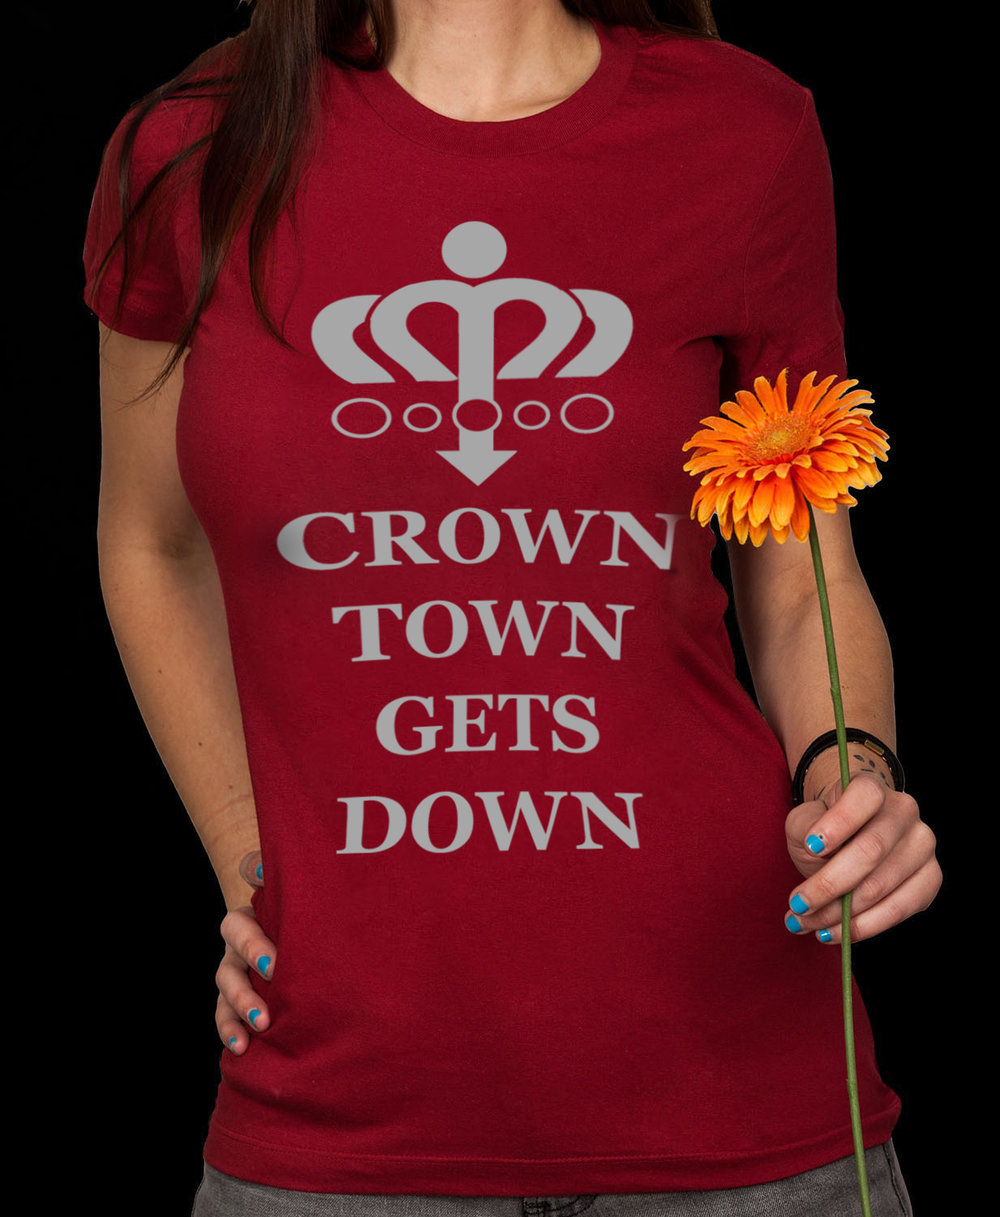 crown town gets down live free and dye clothing clt.jpg